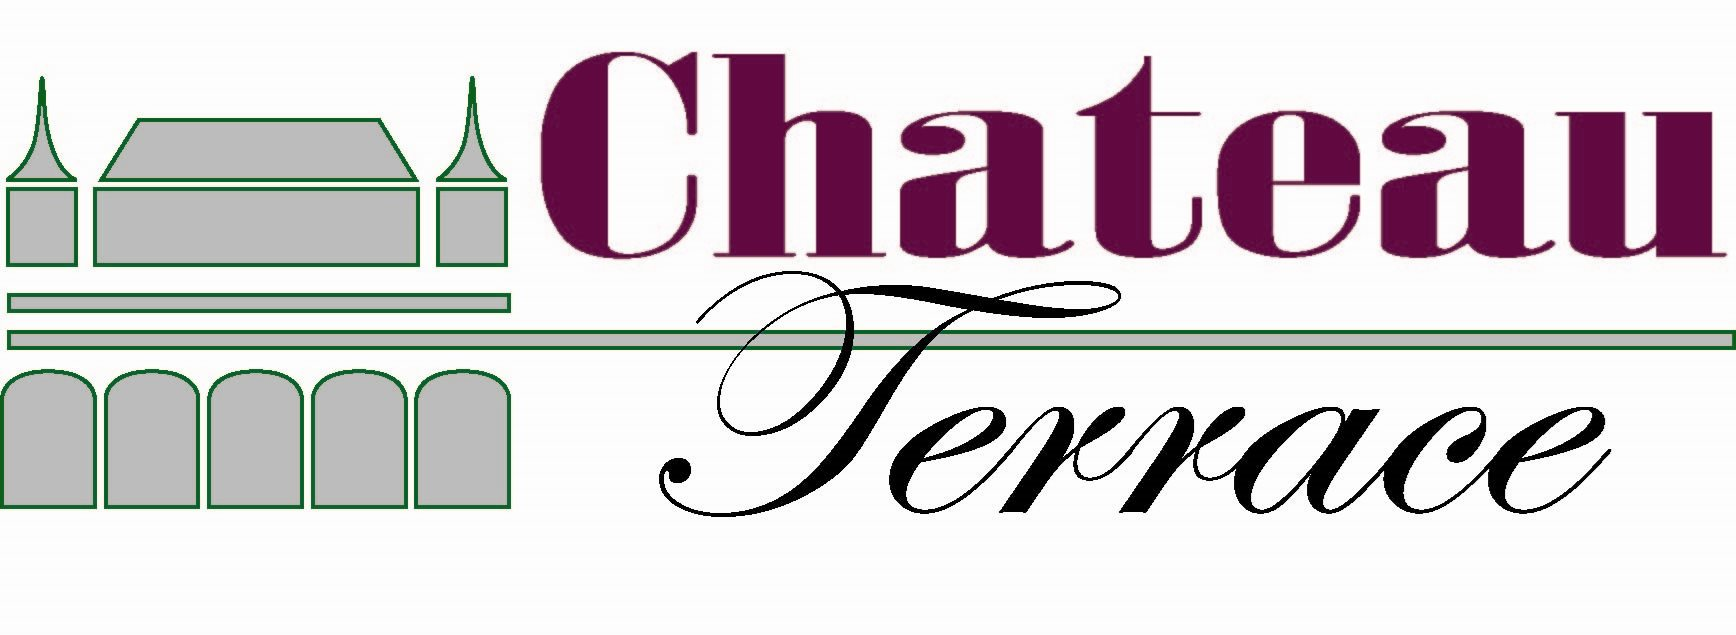 Chateau Terrace Logo in Shippensburg, PA | Chateau Terrace Apartment | Property Management, Inc.